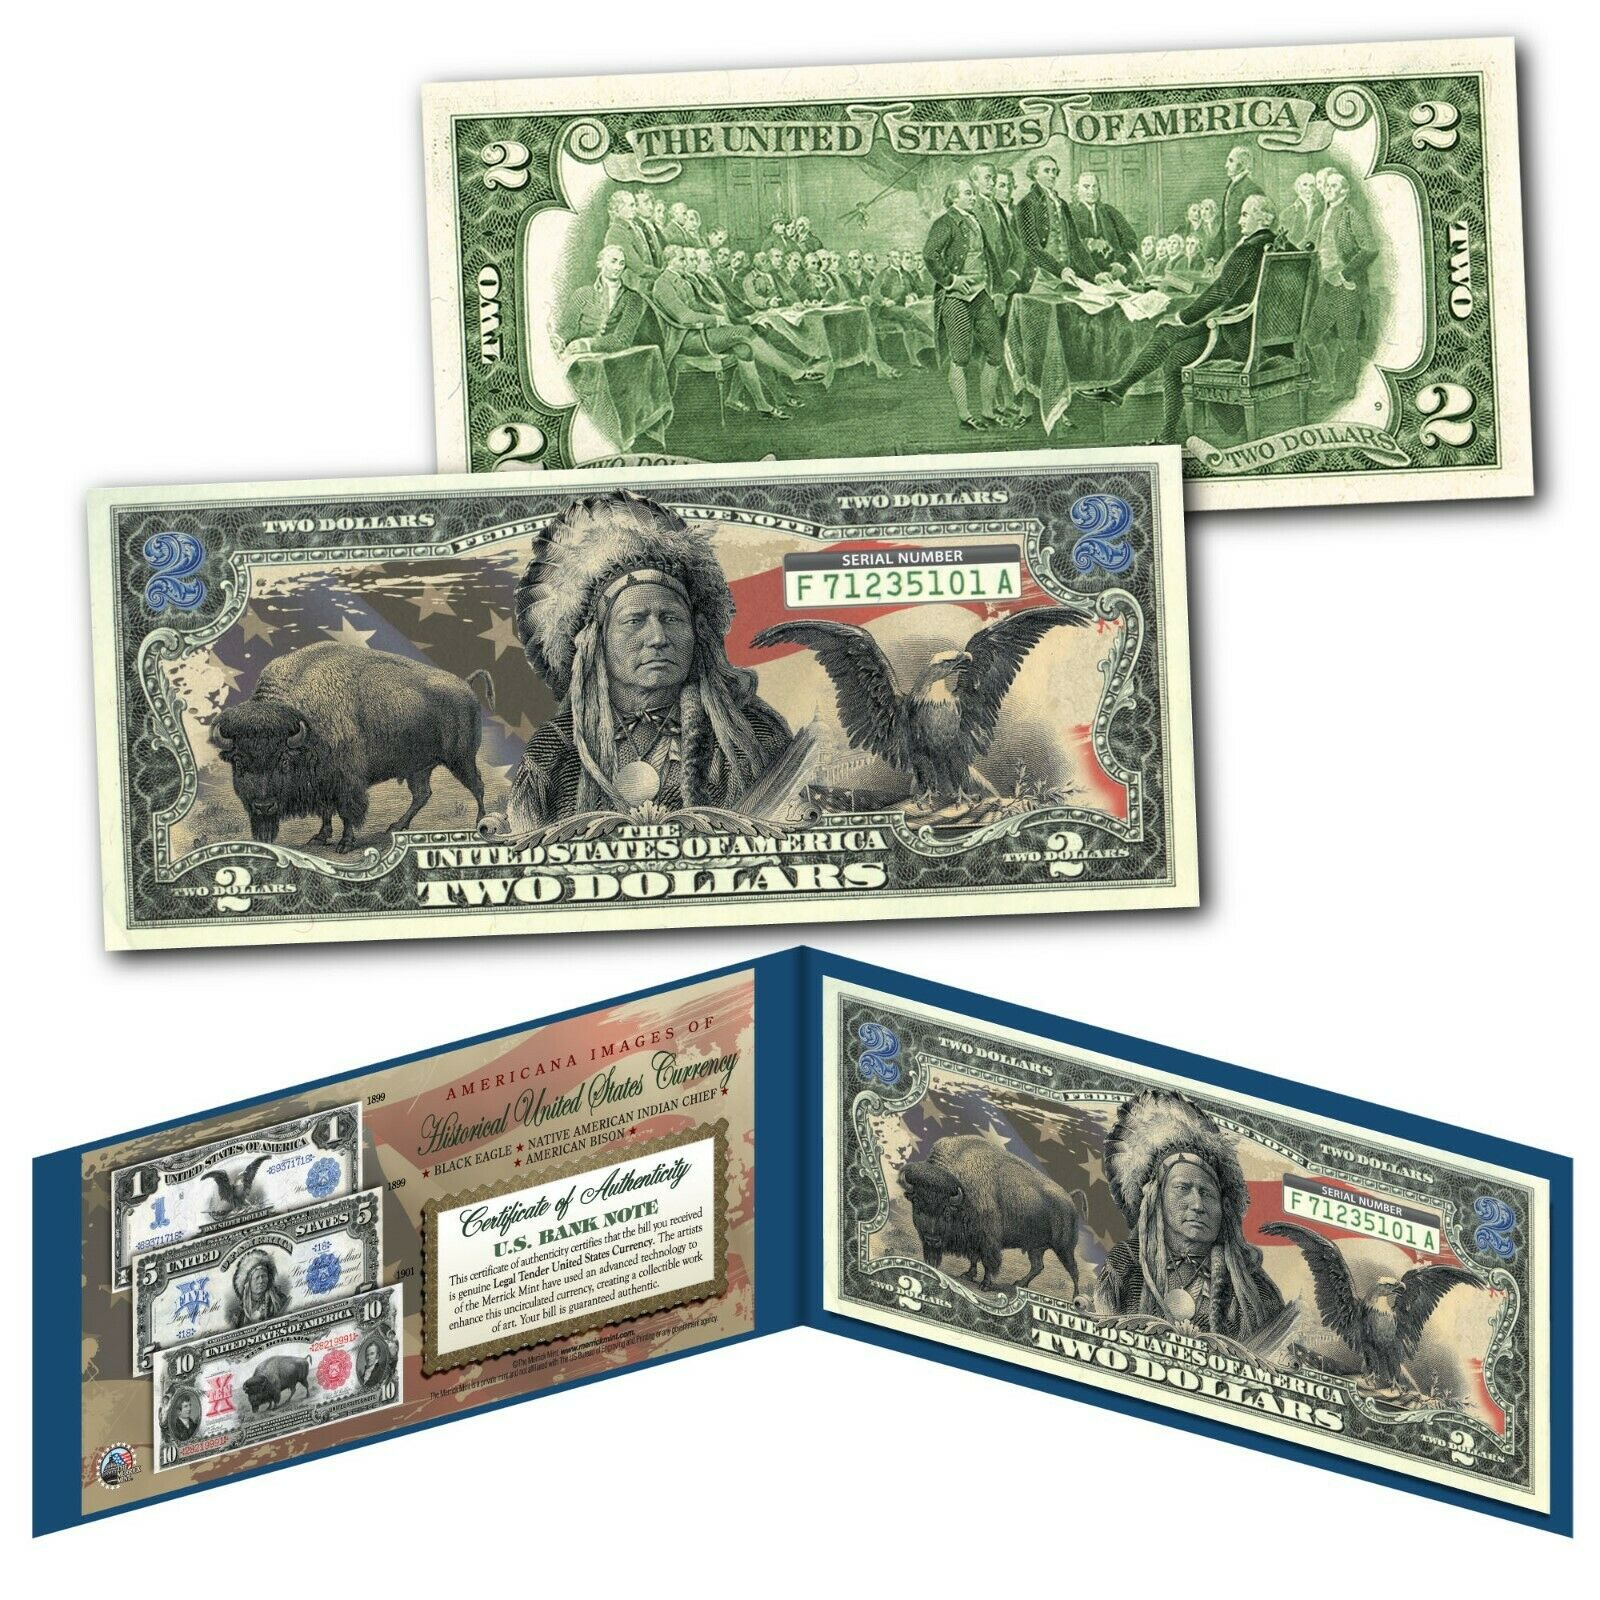 Americana Images of Historical US Currency Genuine Legal Tender $2 Bill MUST SEE 1